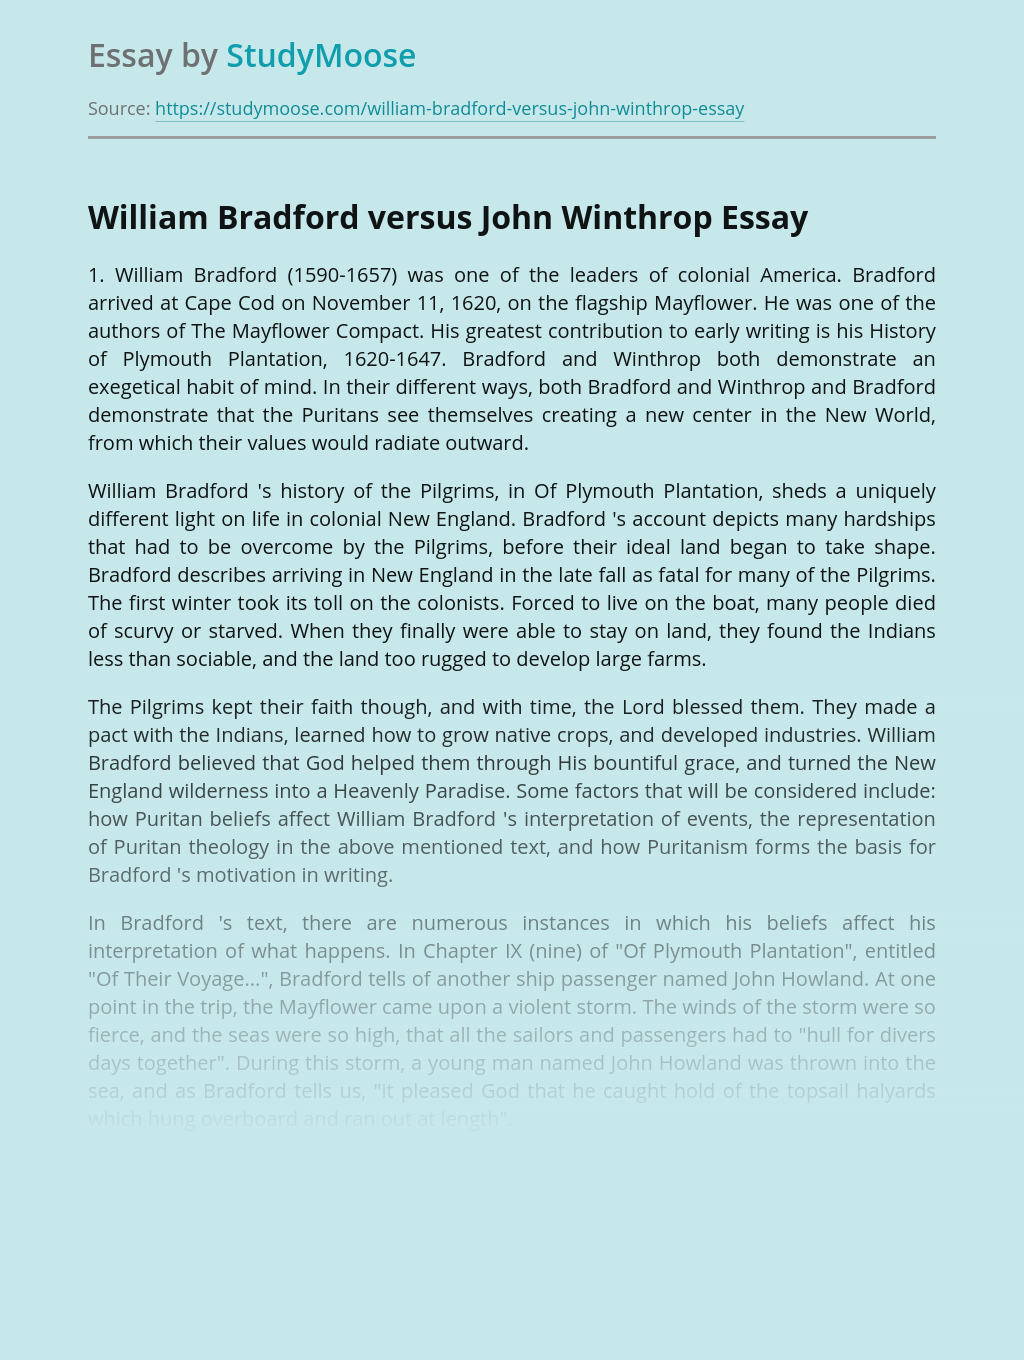 Colonization of America by Bradford and Winthrop